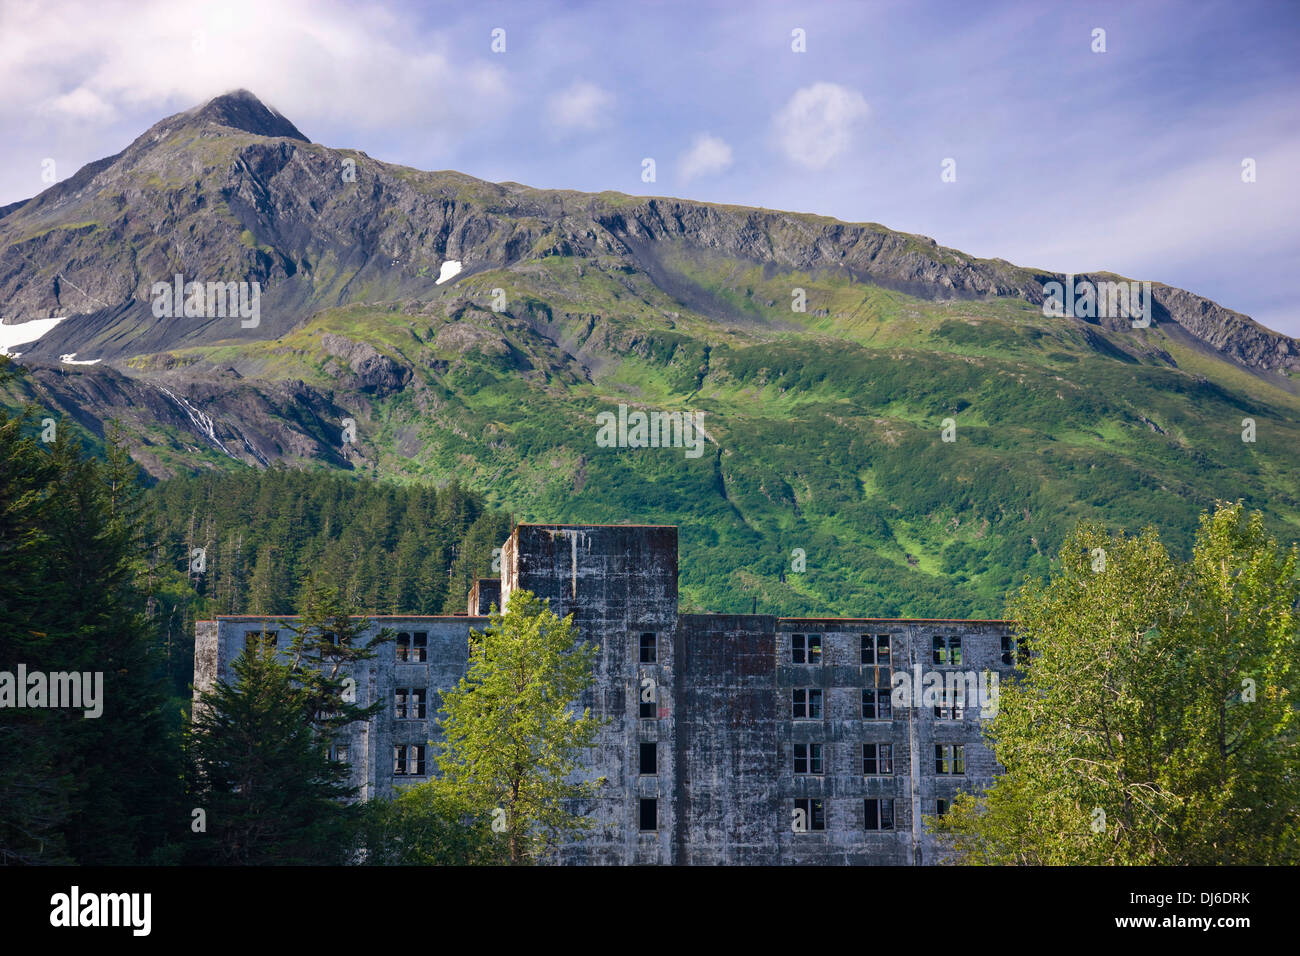 The Buckner Building A Remnant Of World War Ii Construction Sits Abandonded In Whittier, Southcentral Alaska - Stock Image